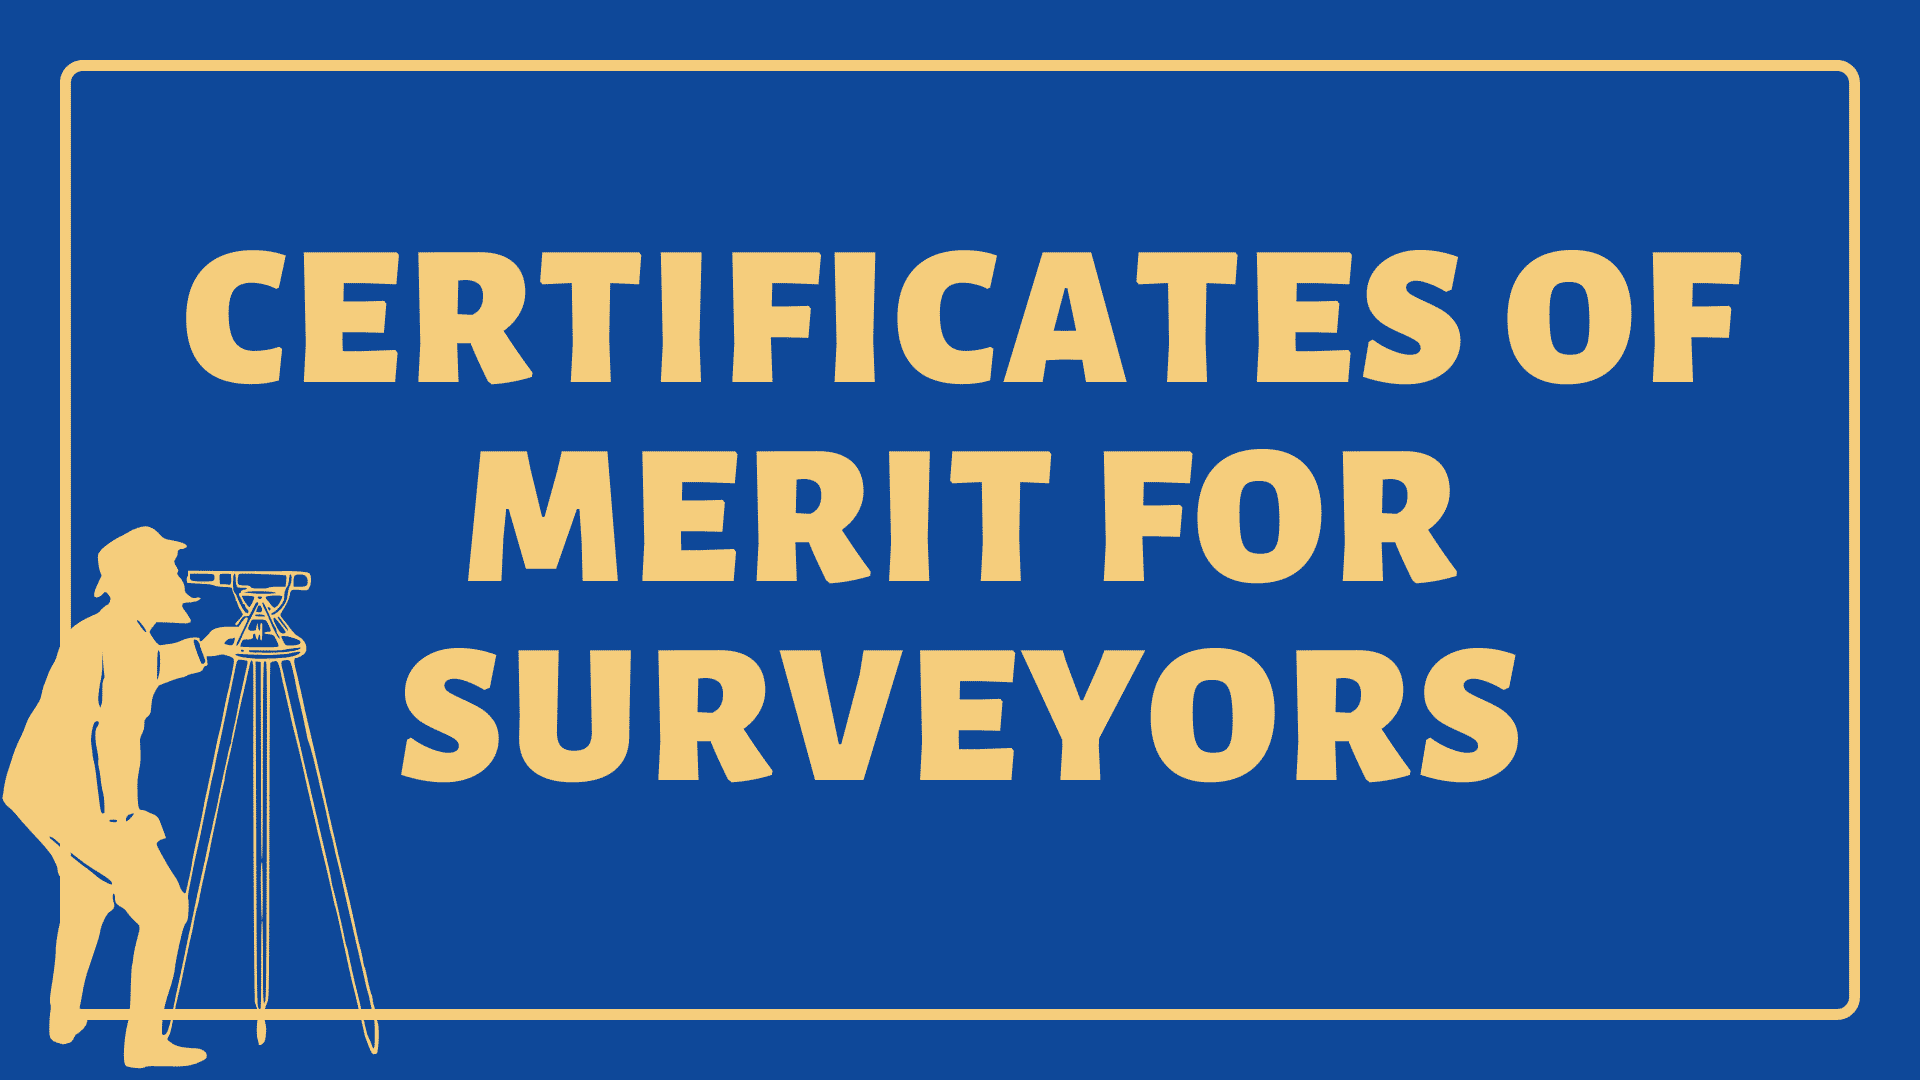 Certificates of Merit